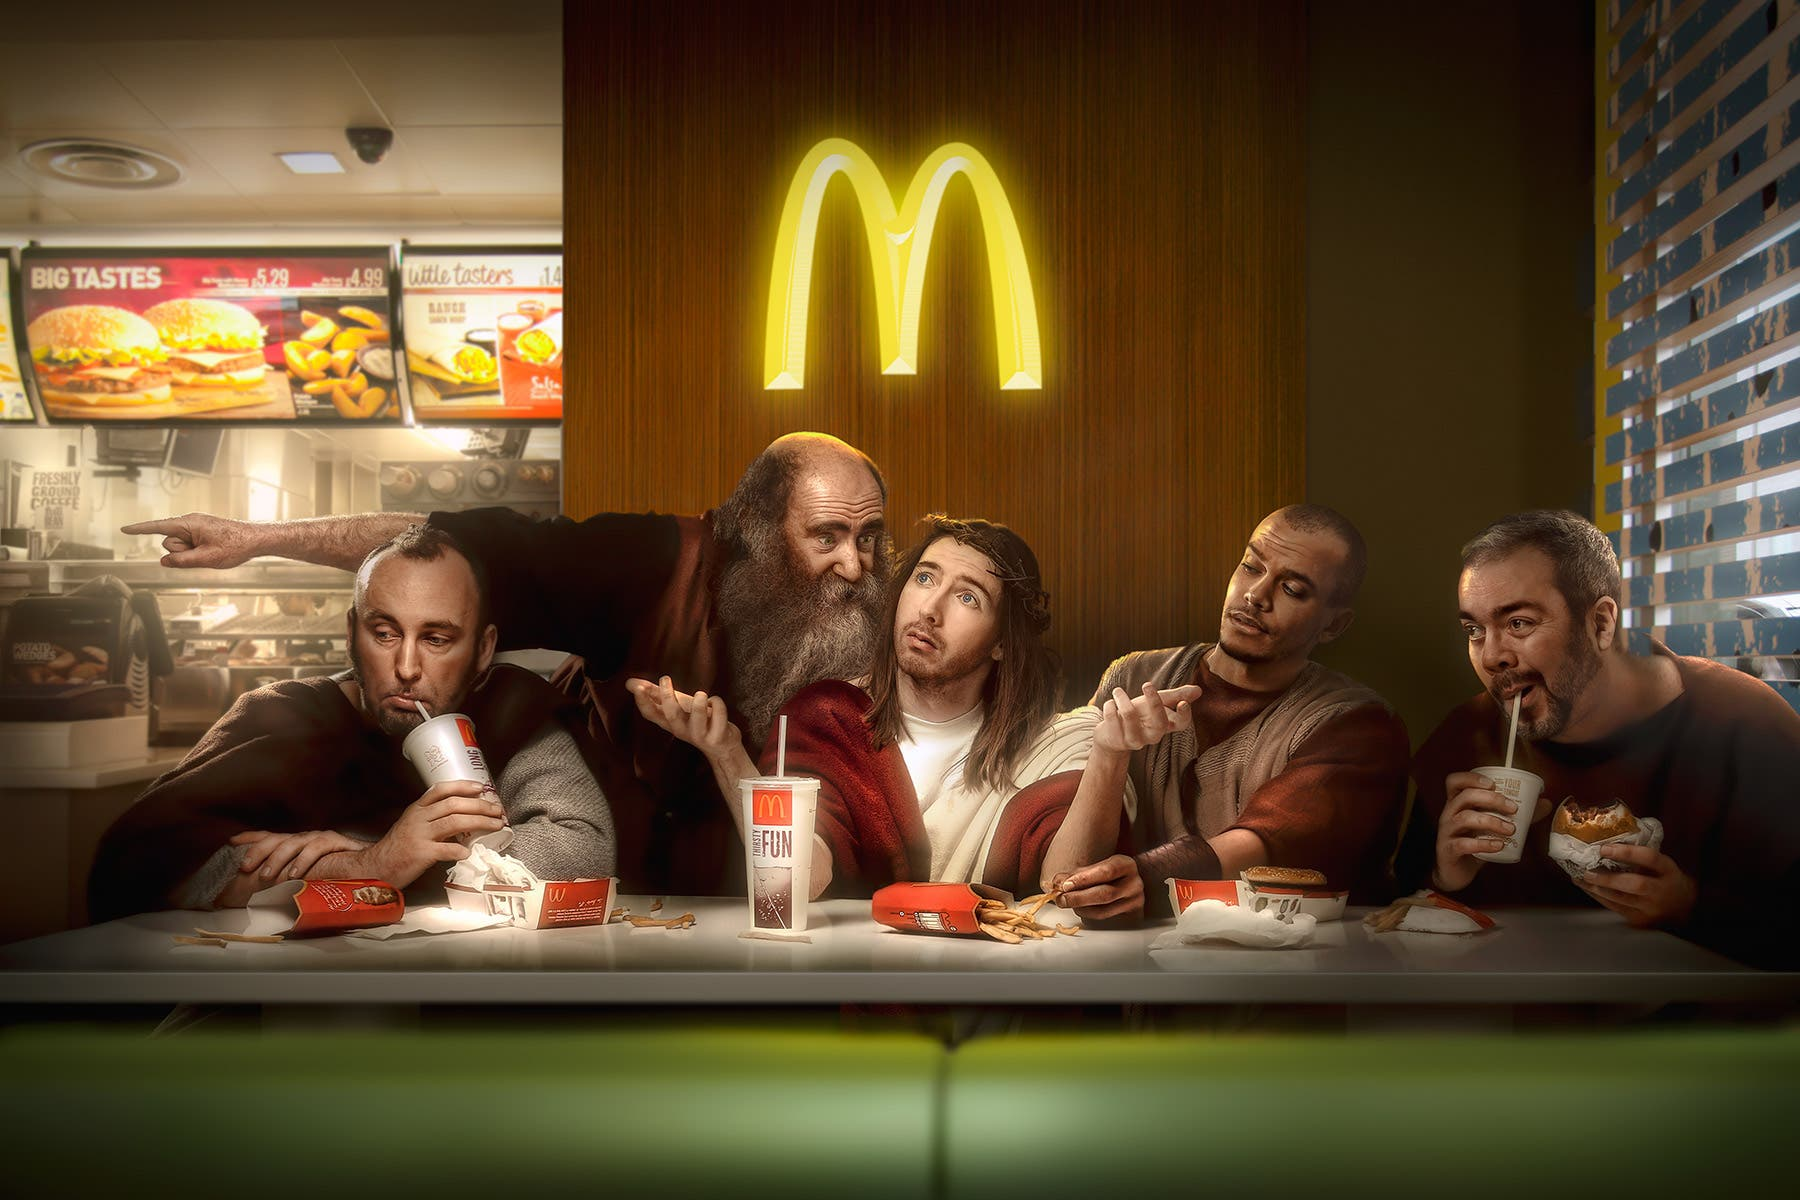 Chris Clor Imagines Jesus and His Disciples in the Modern World